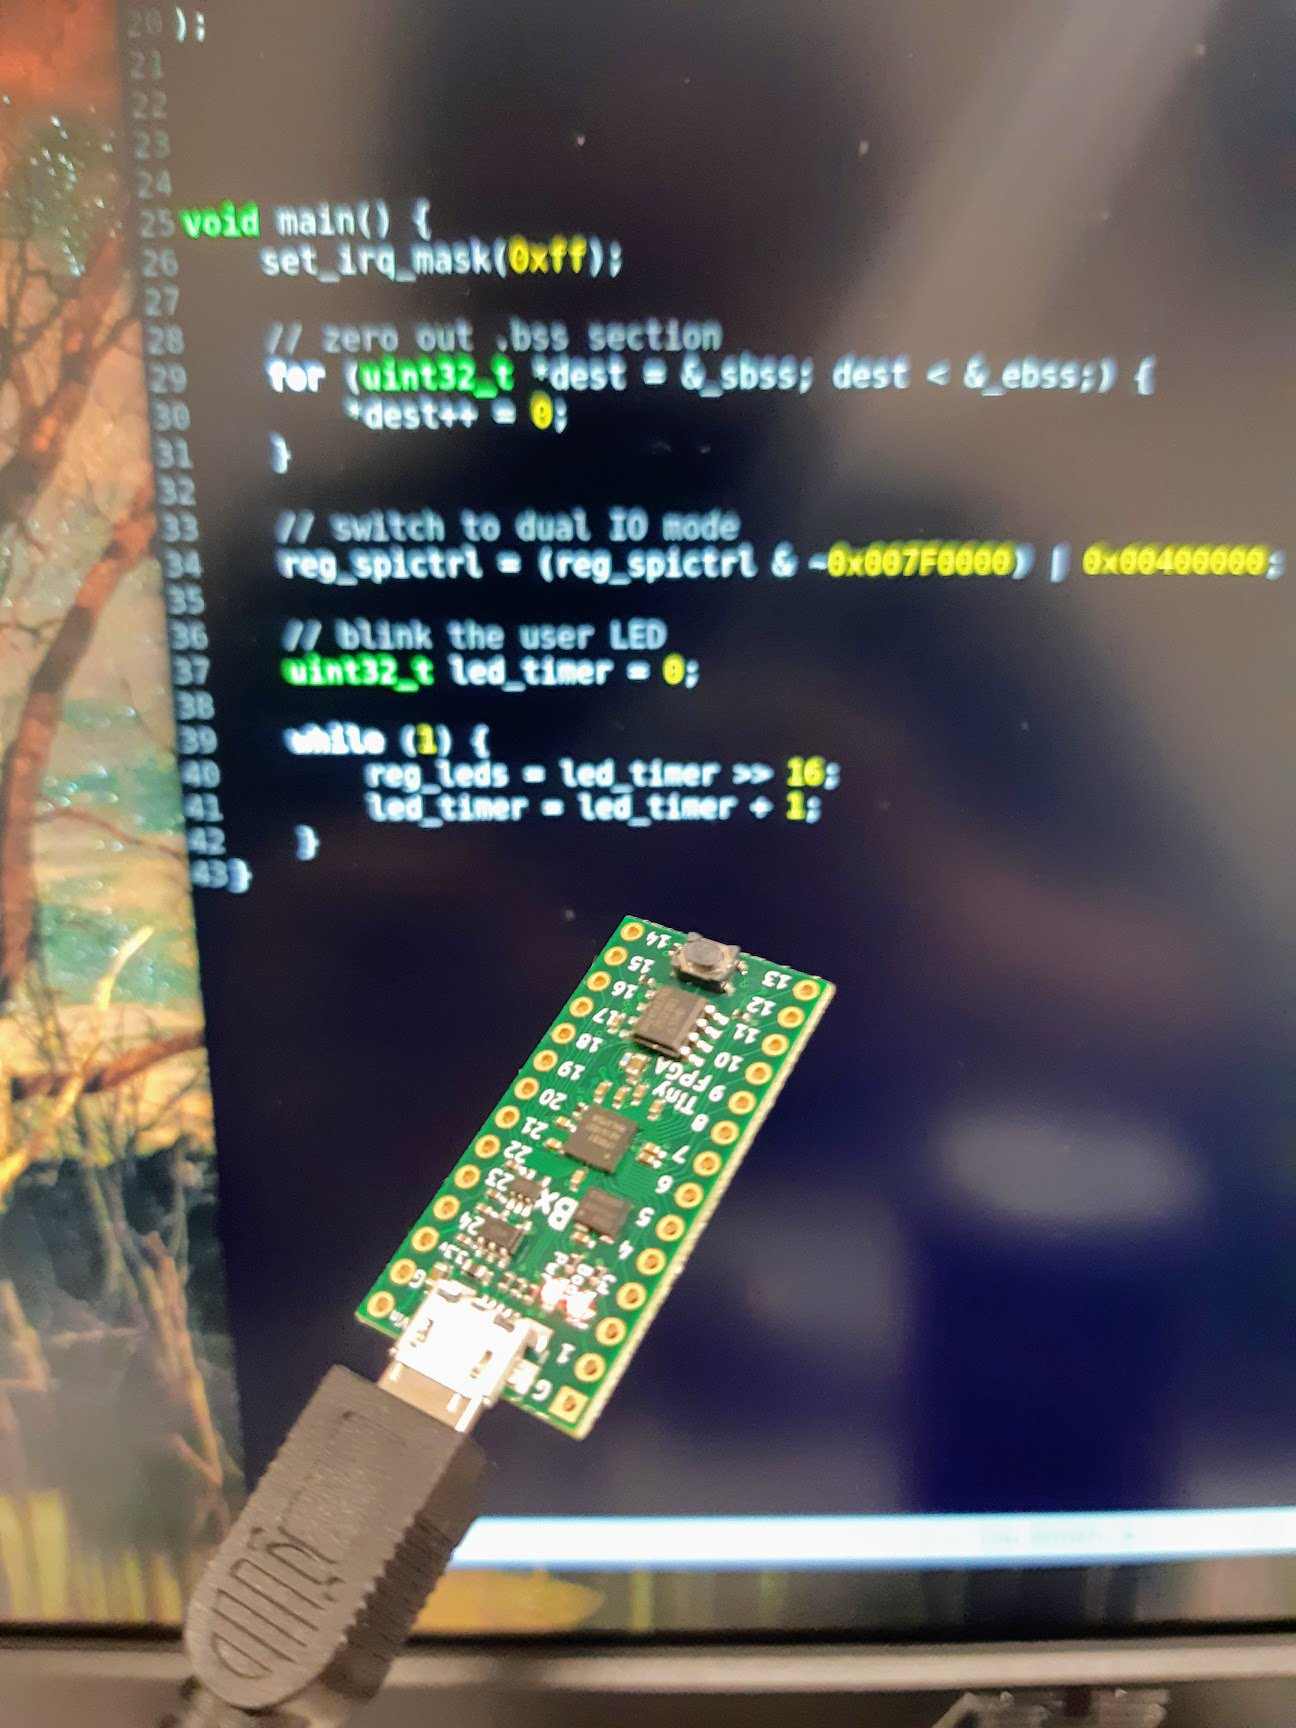 """Ugh, this is crazy cool.. - PicoRV32 RISC-V, which is less than 3000 lines of Verilog. - Implemented and loaded on TinyFPGA BX via open source tools (yosys, arachne-pnr, icetime, icepack). - Running C blinky, cross-compiled with """"riscv32-unknown-elf-gcc -march=rv32imc"""" *BLINKS* https://t.co/cI2I7iI60O"""